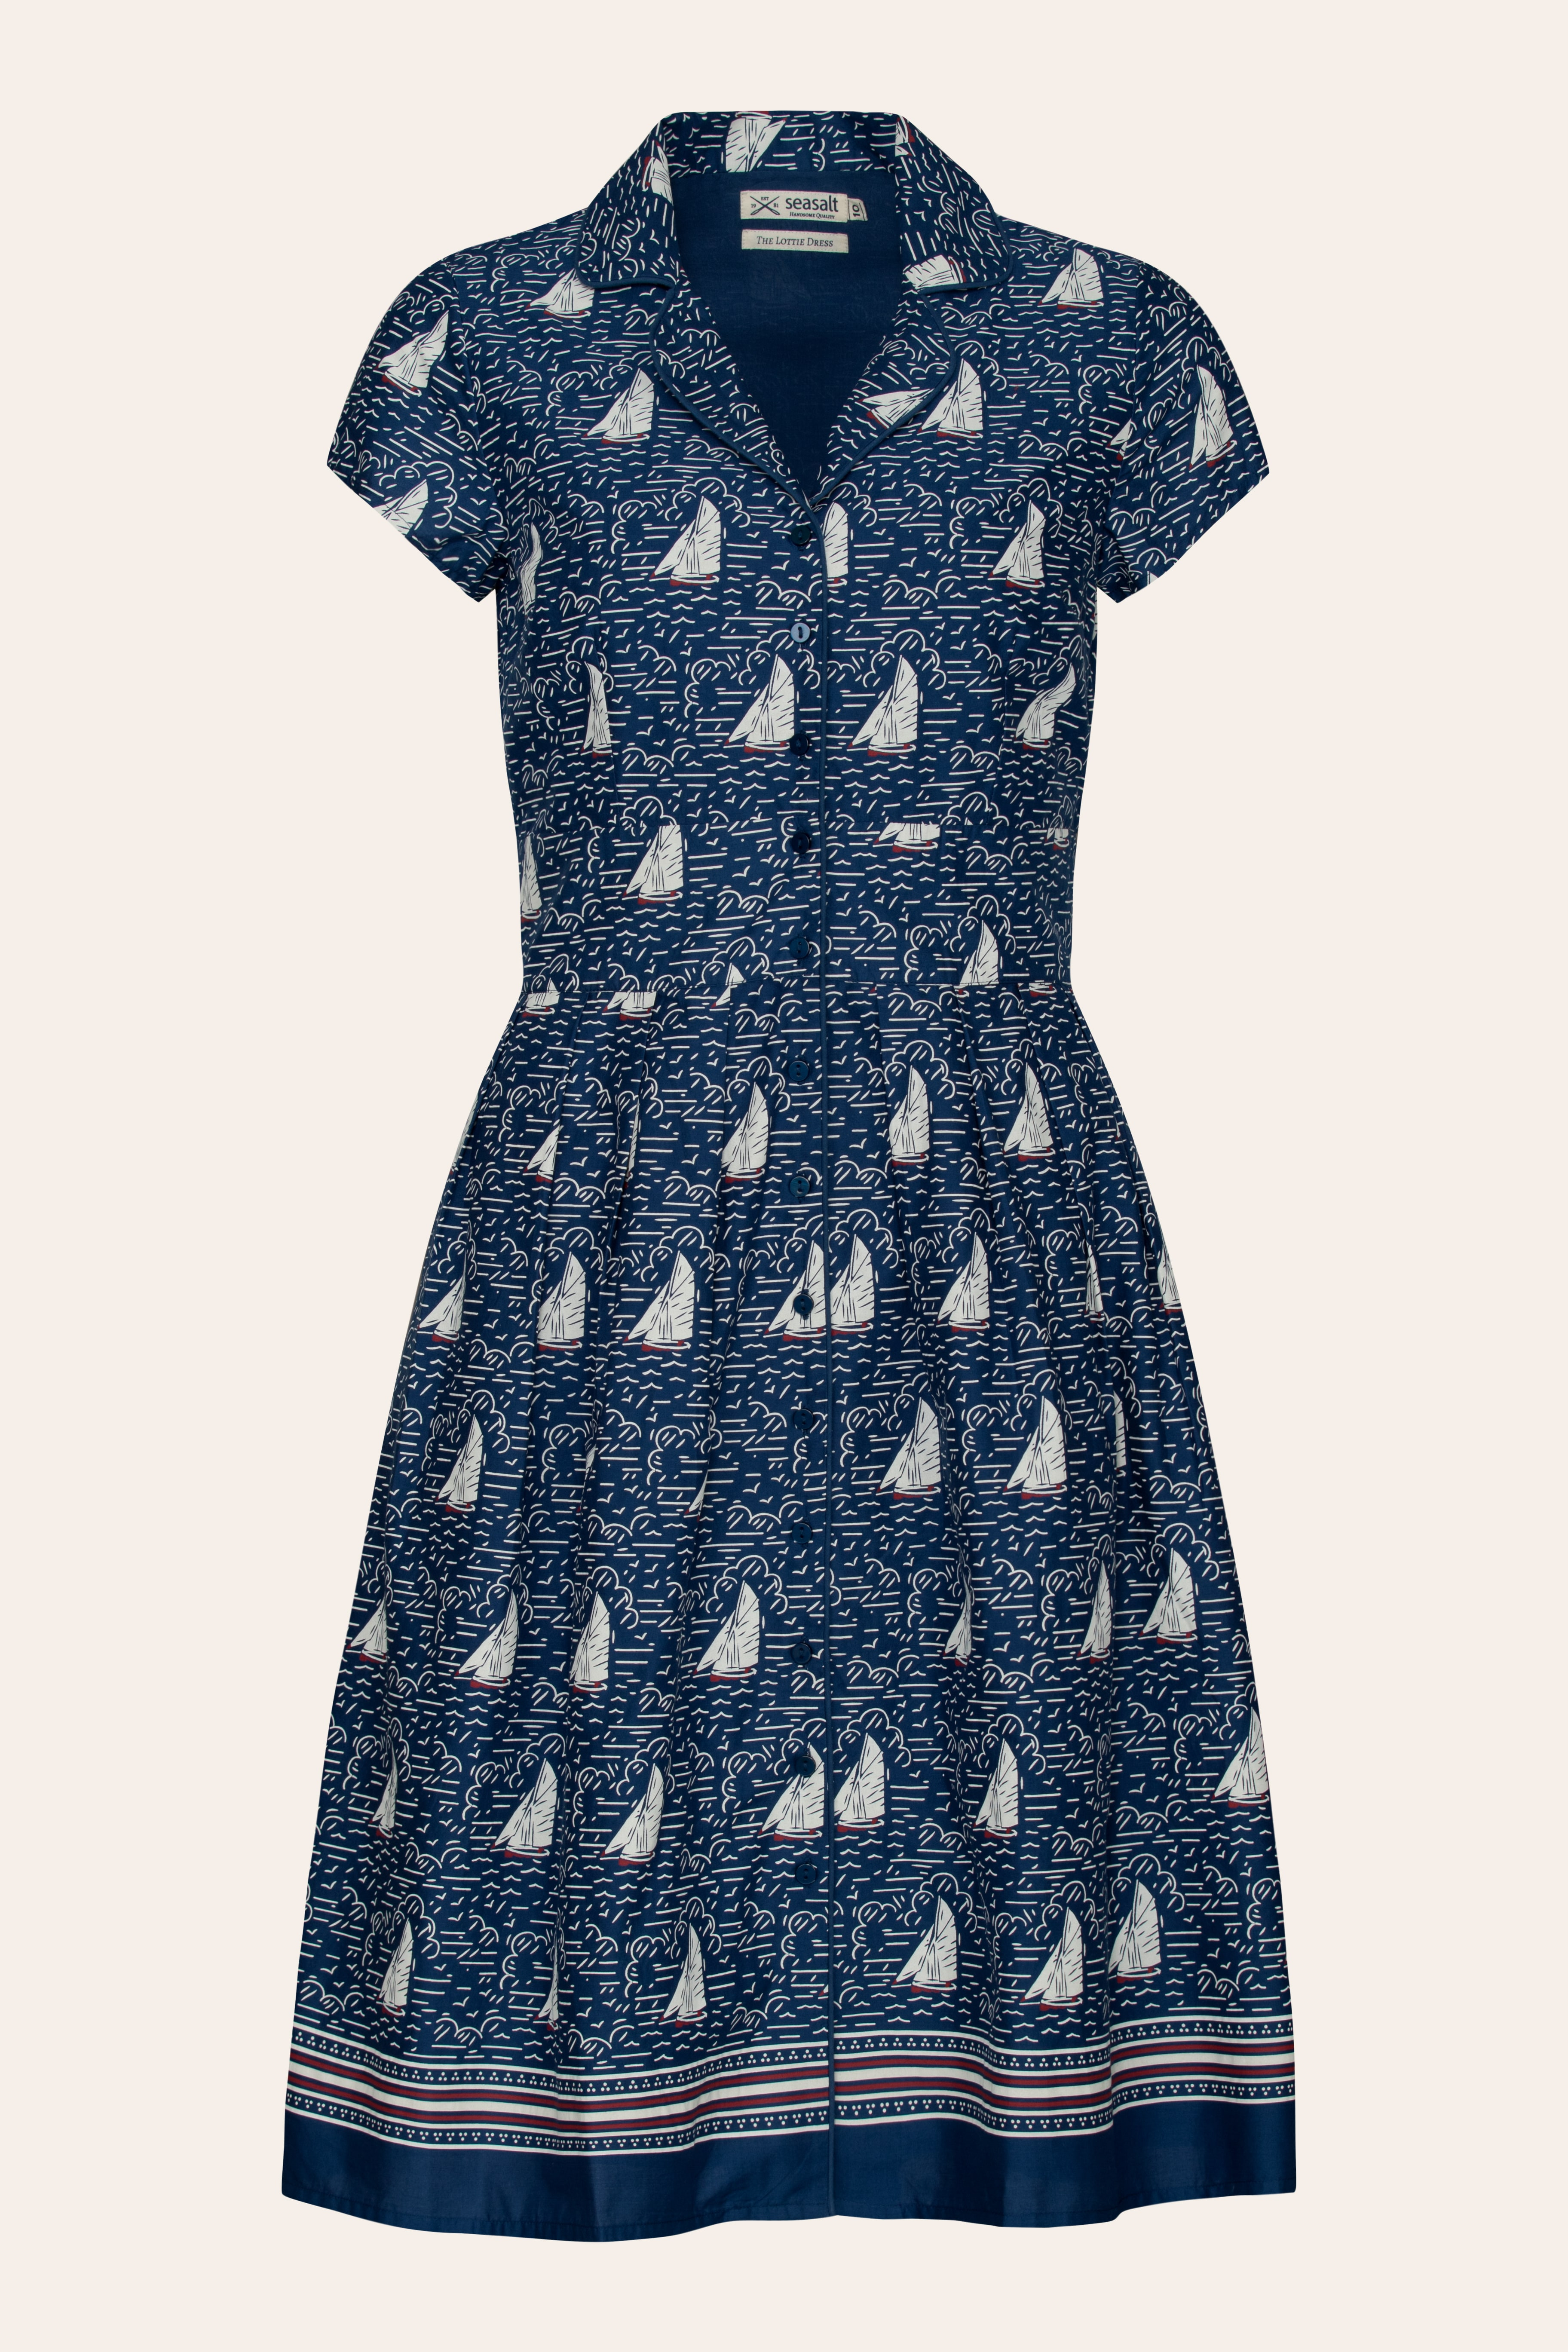 Printed Cotton Fit And Flare Pleated Tea Lottie Dress